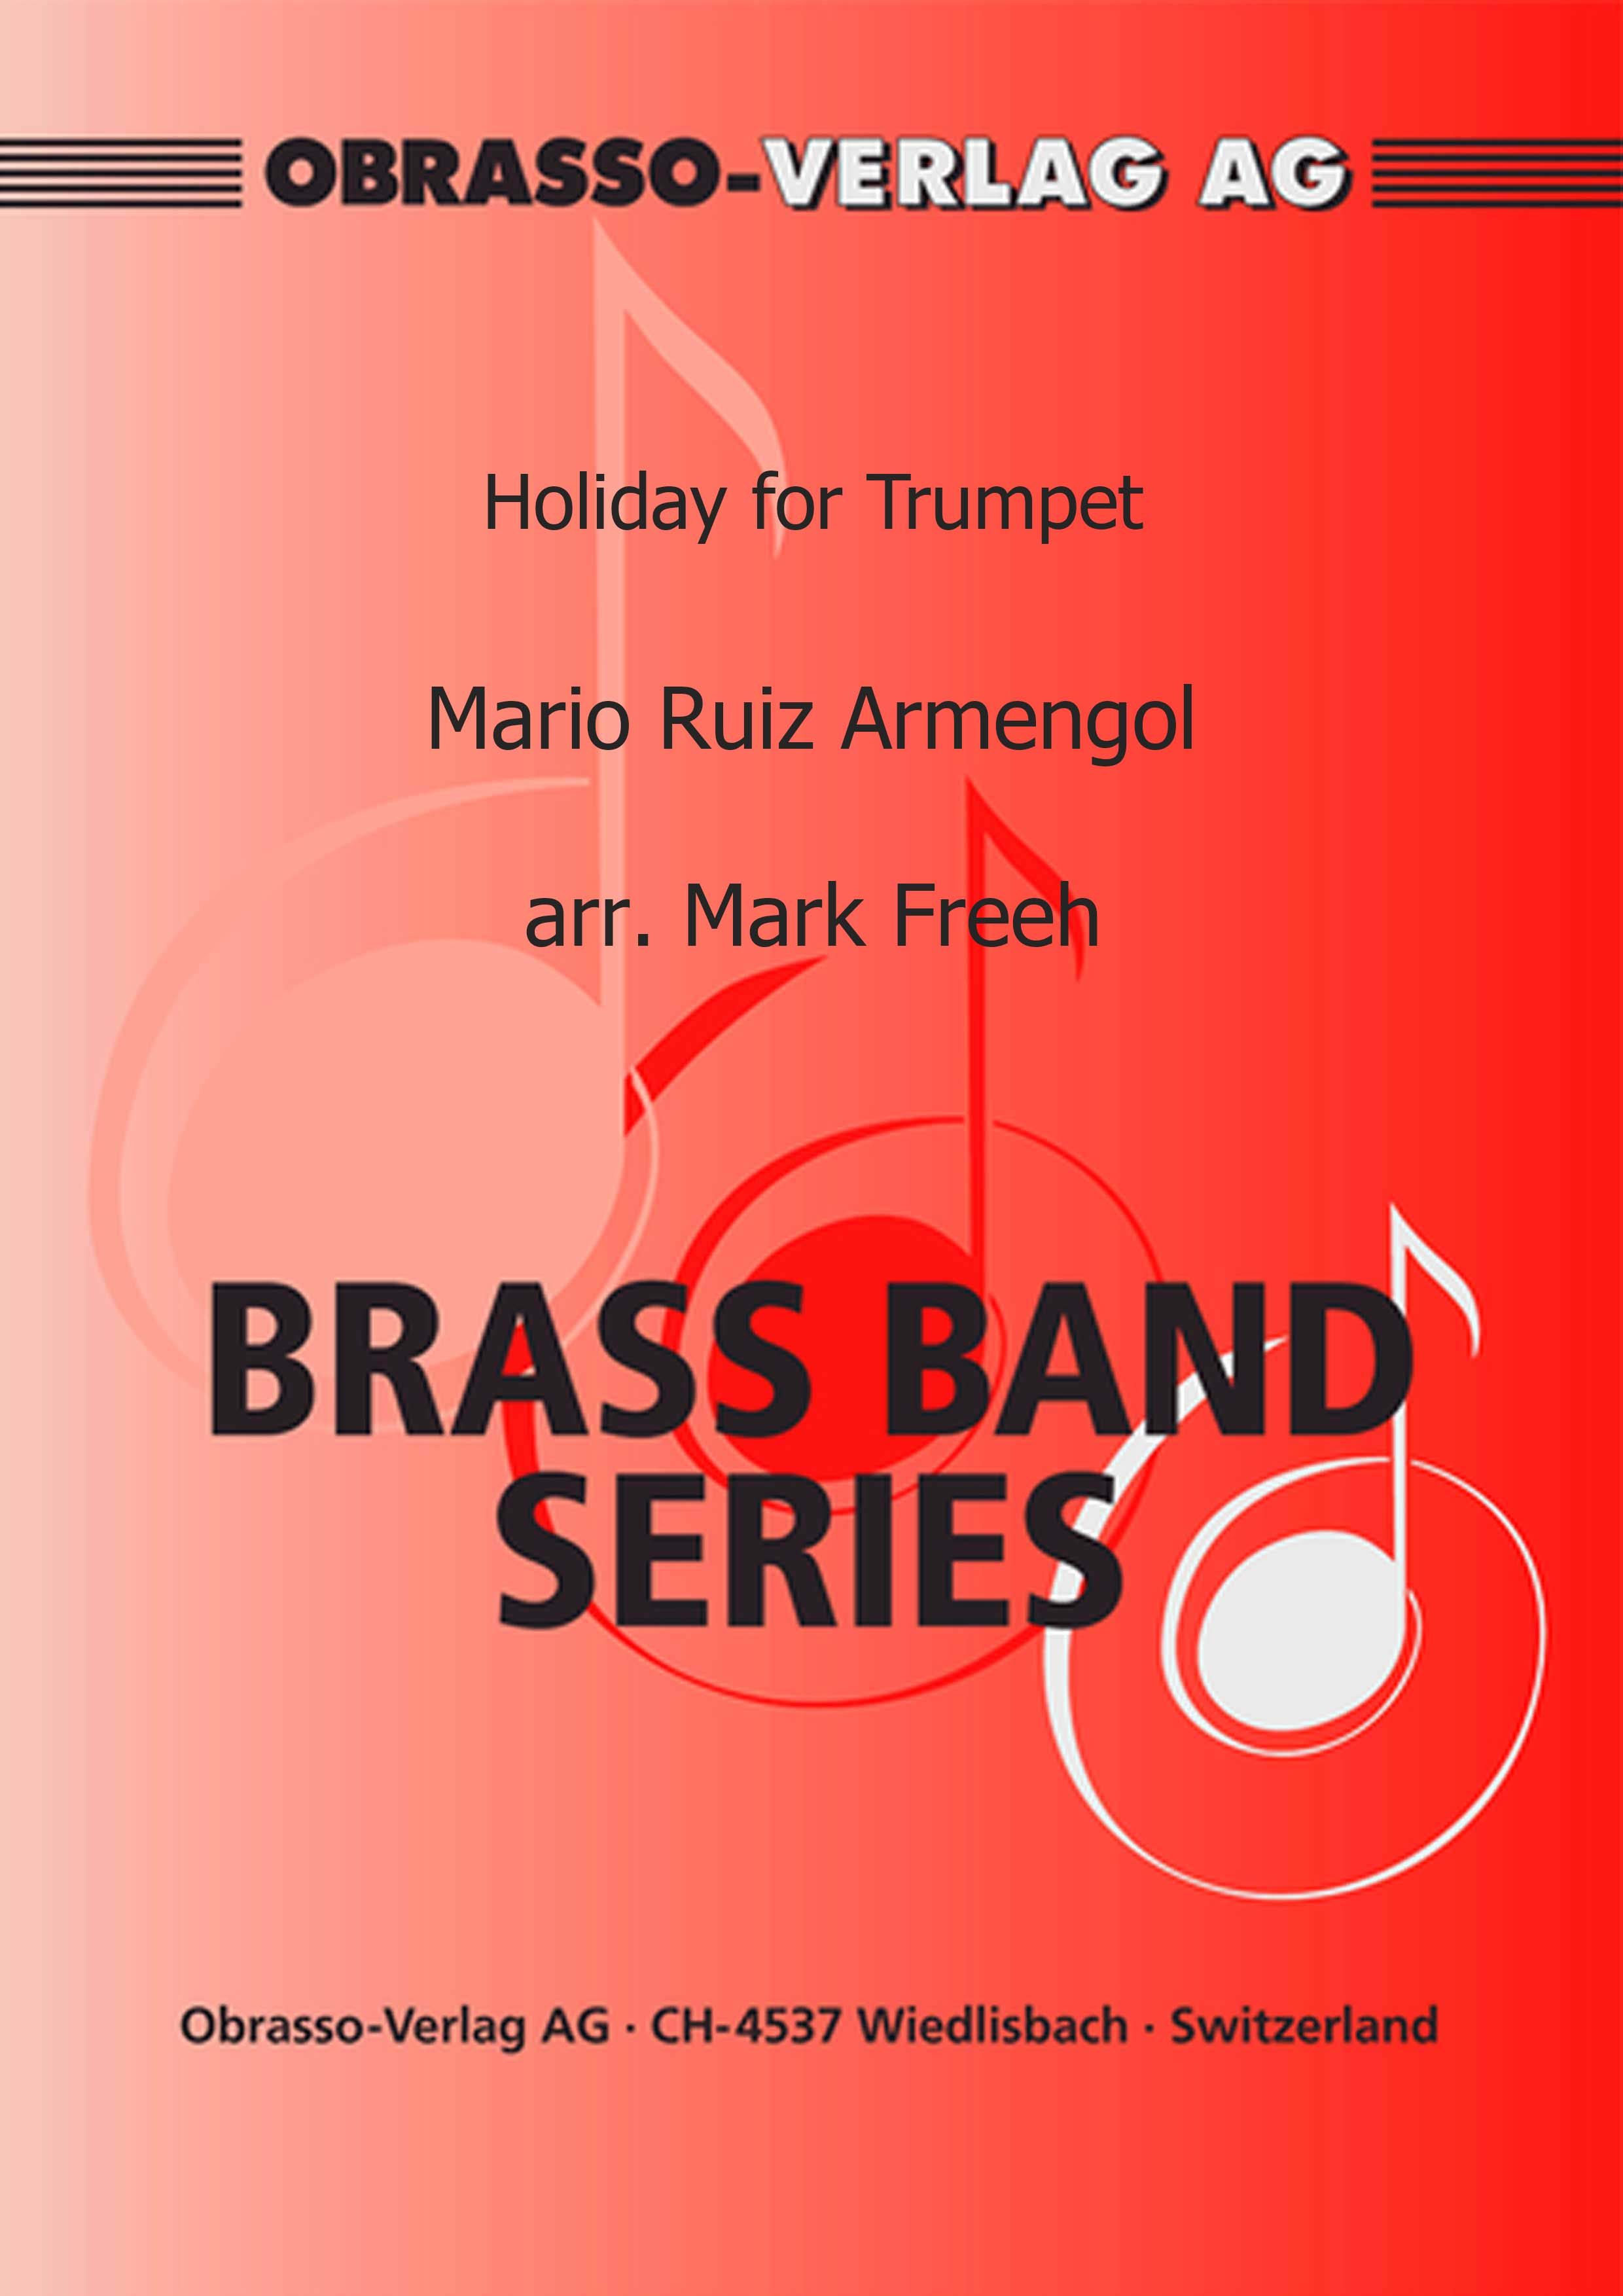 Holiday for Trumpet (Cornet Solo with Brass Band - Score and Parts)